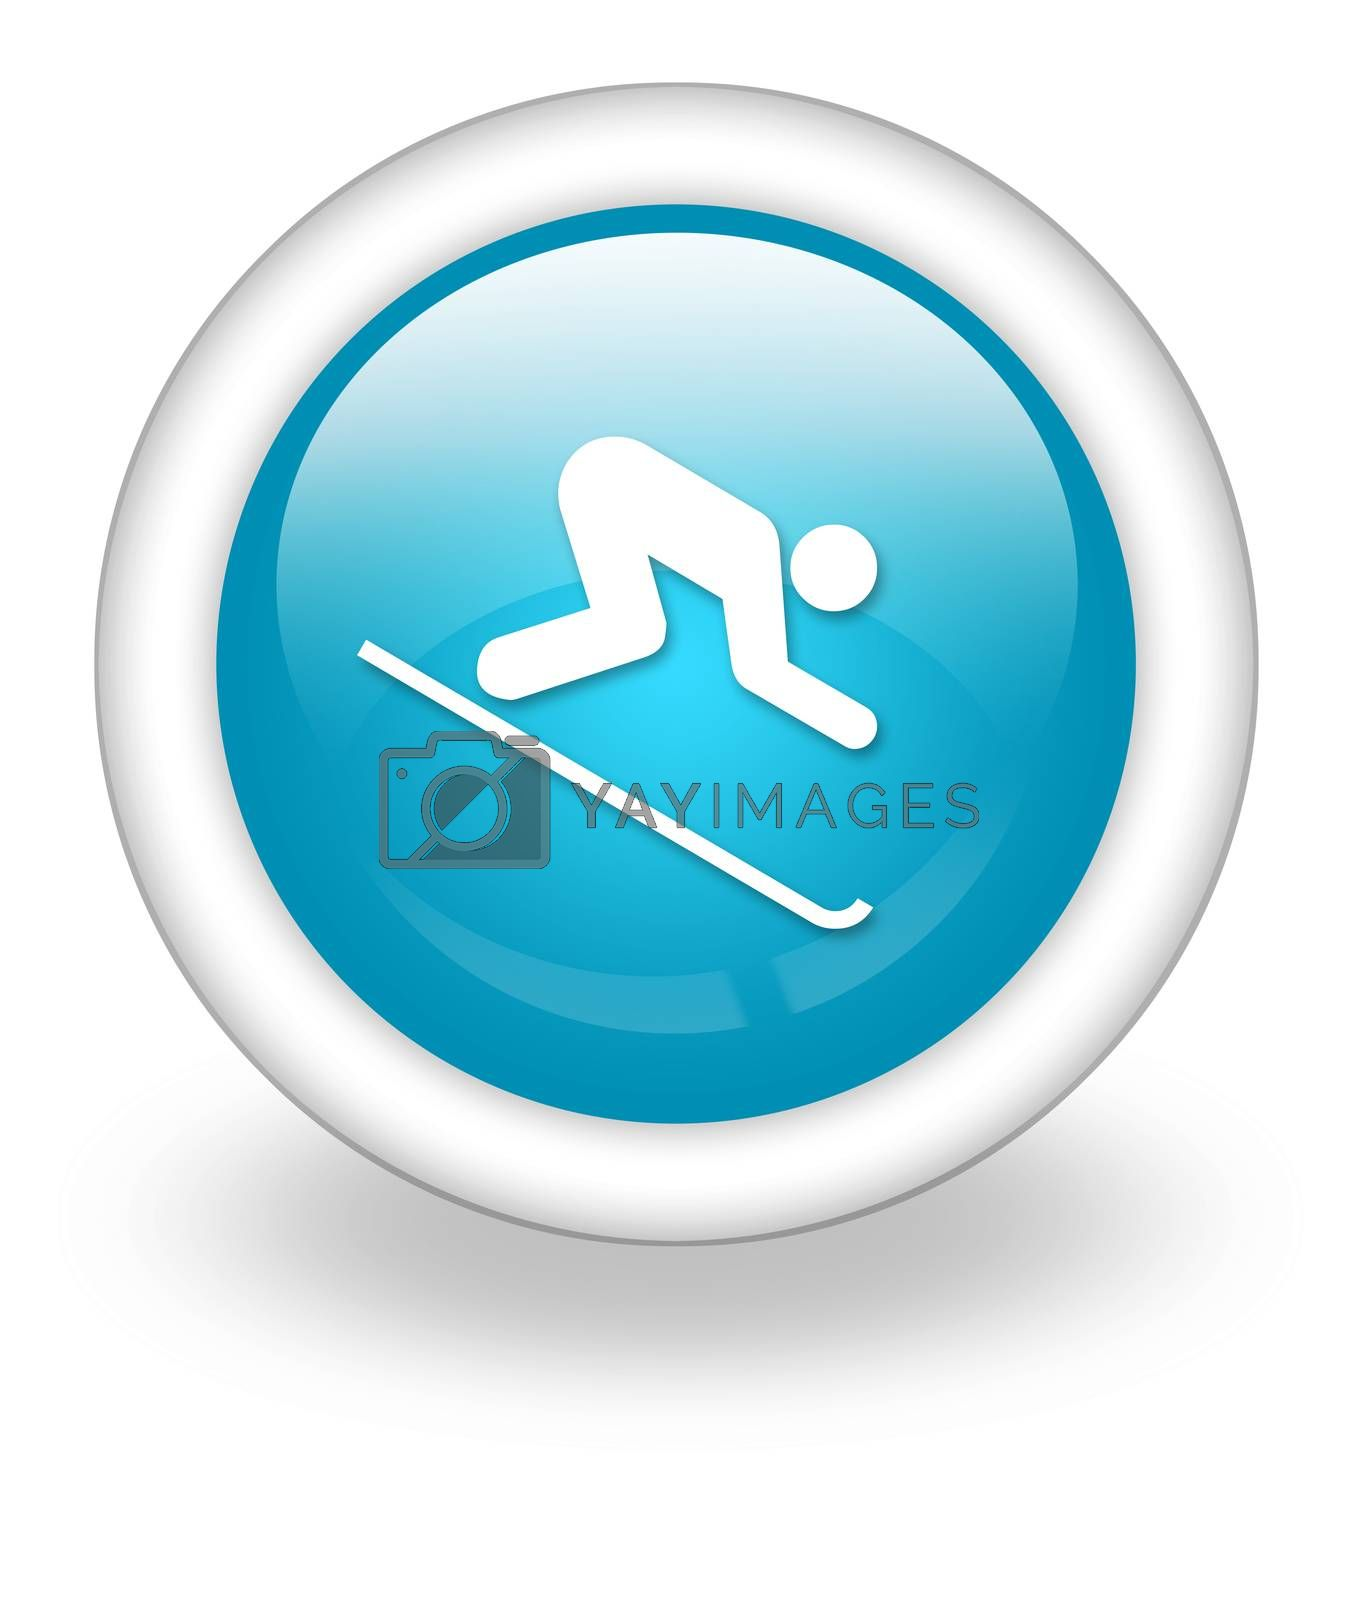 Icon, Button, Pictogram Downhill Skiing by mindscanner